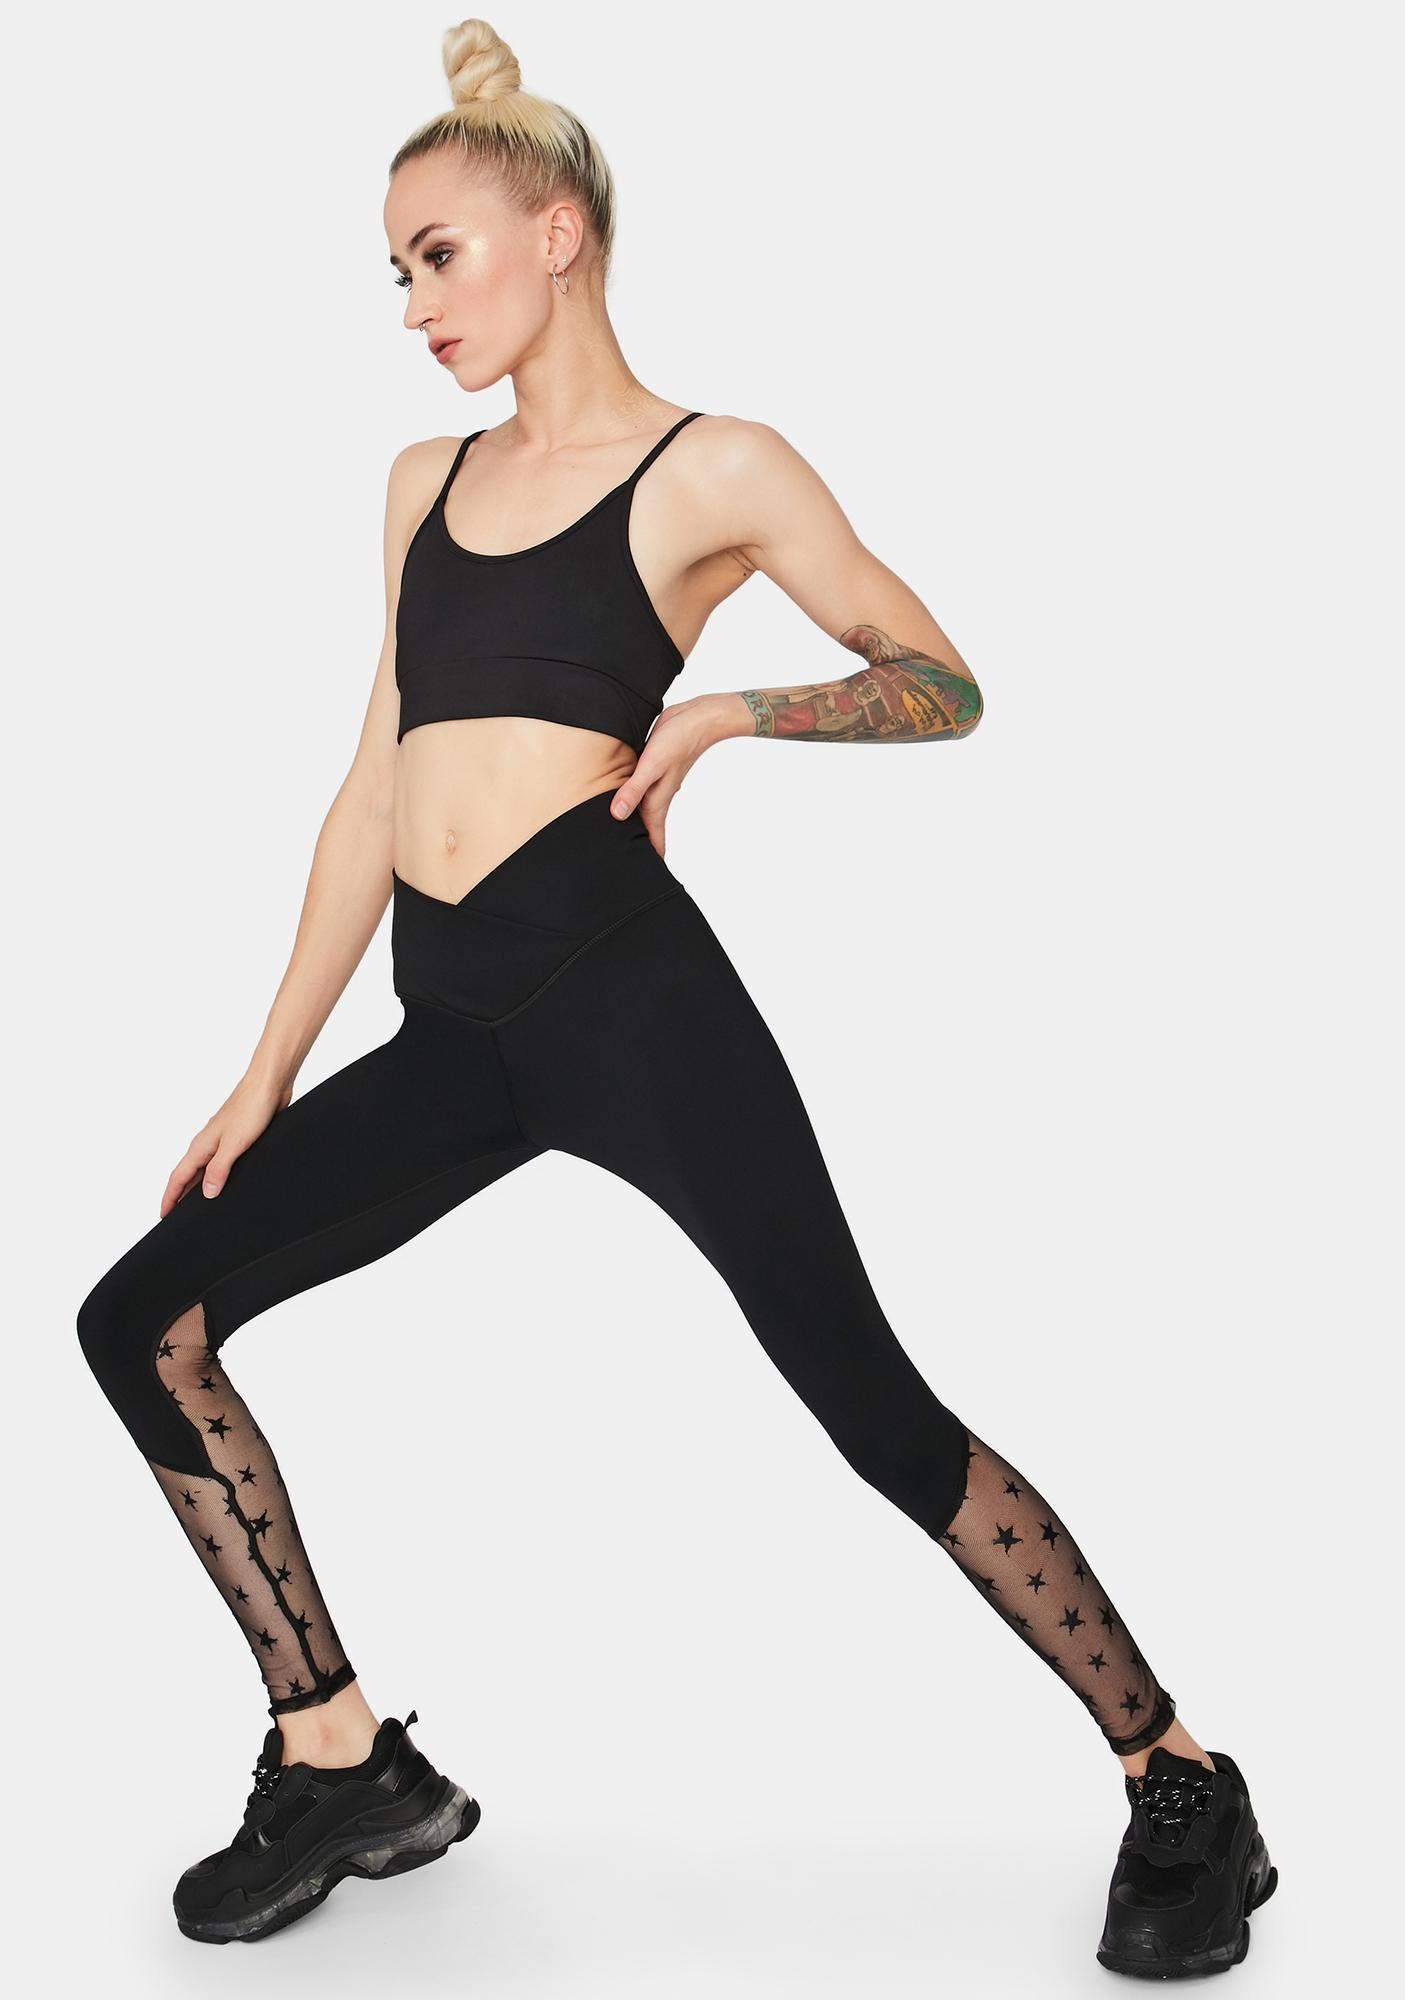 Star Playa Sporty Leggings